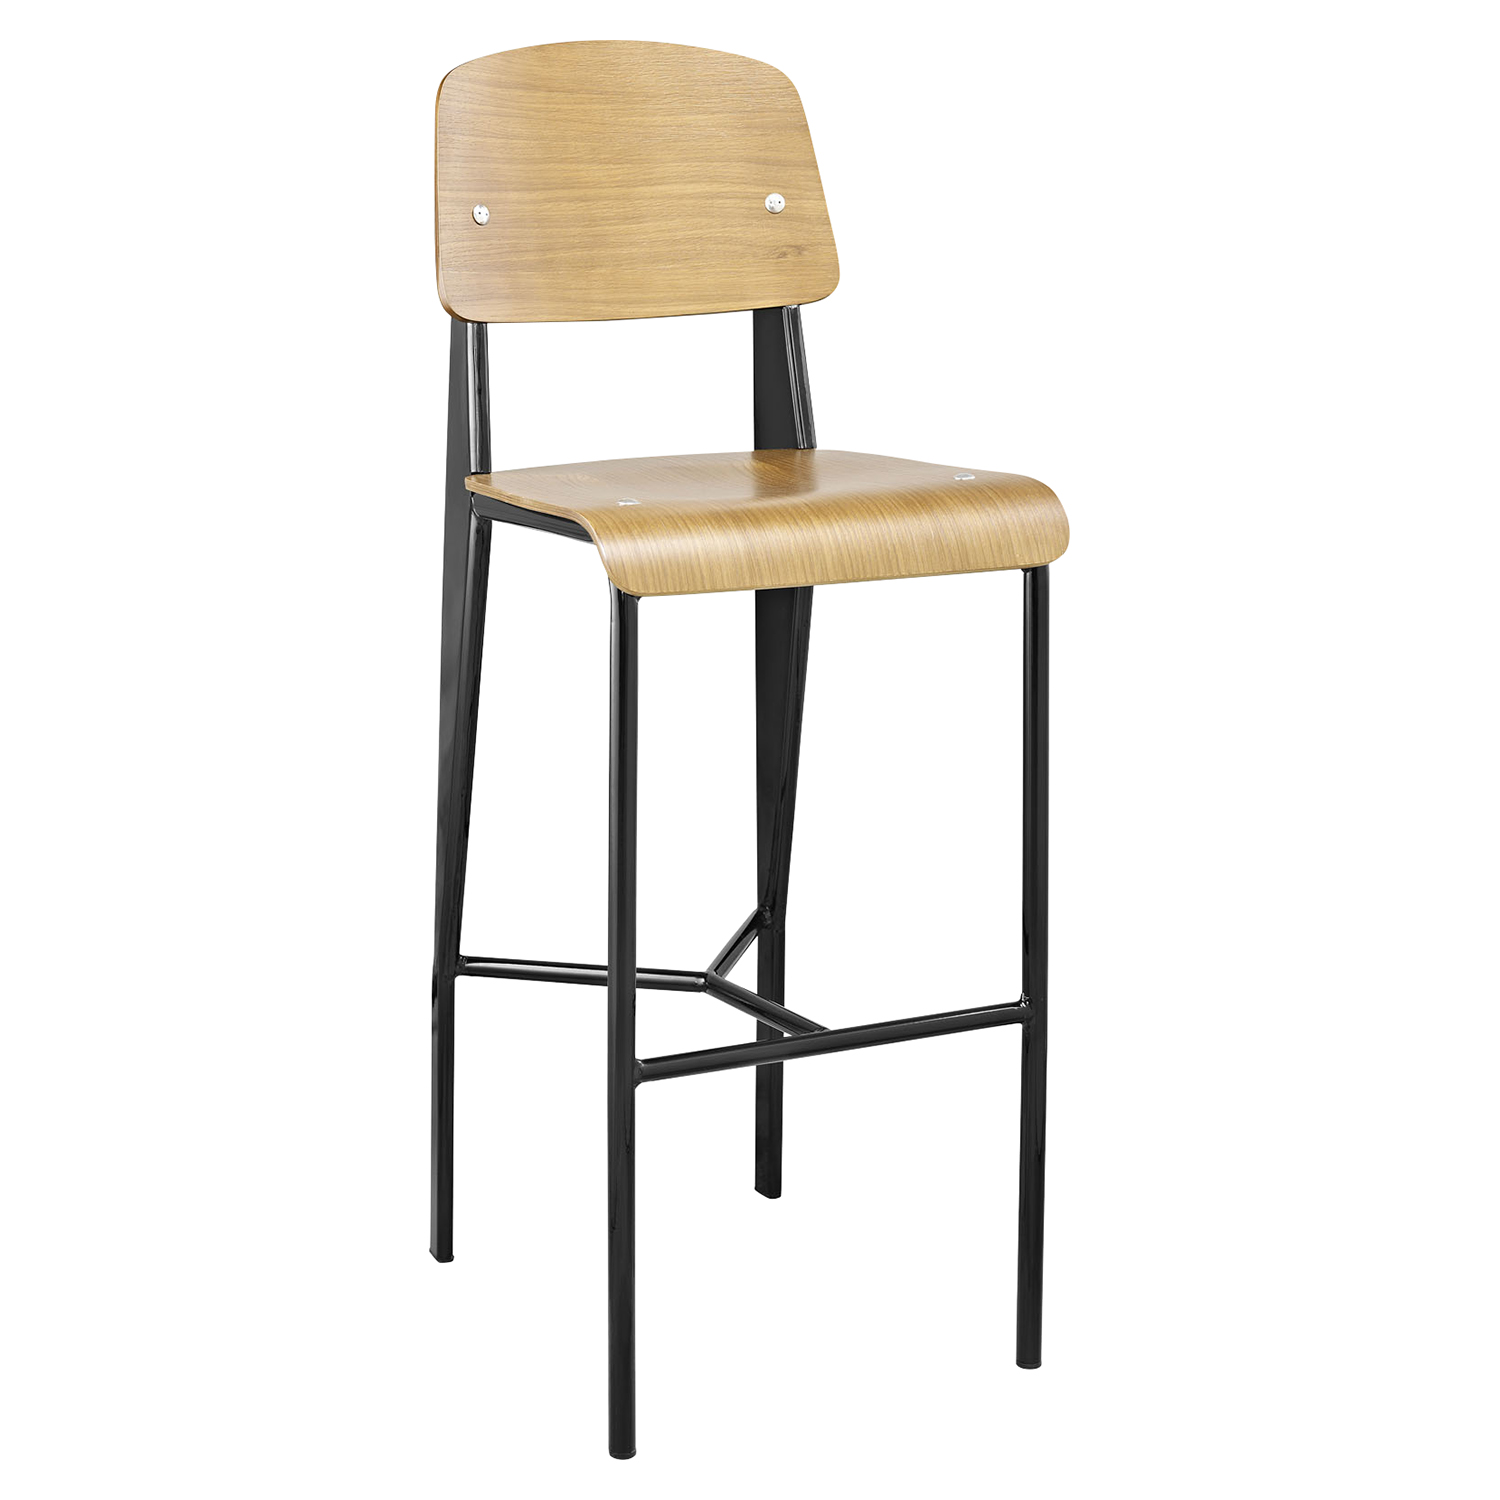 Cabin Armless Bar Stool - Natural, Black